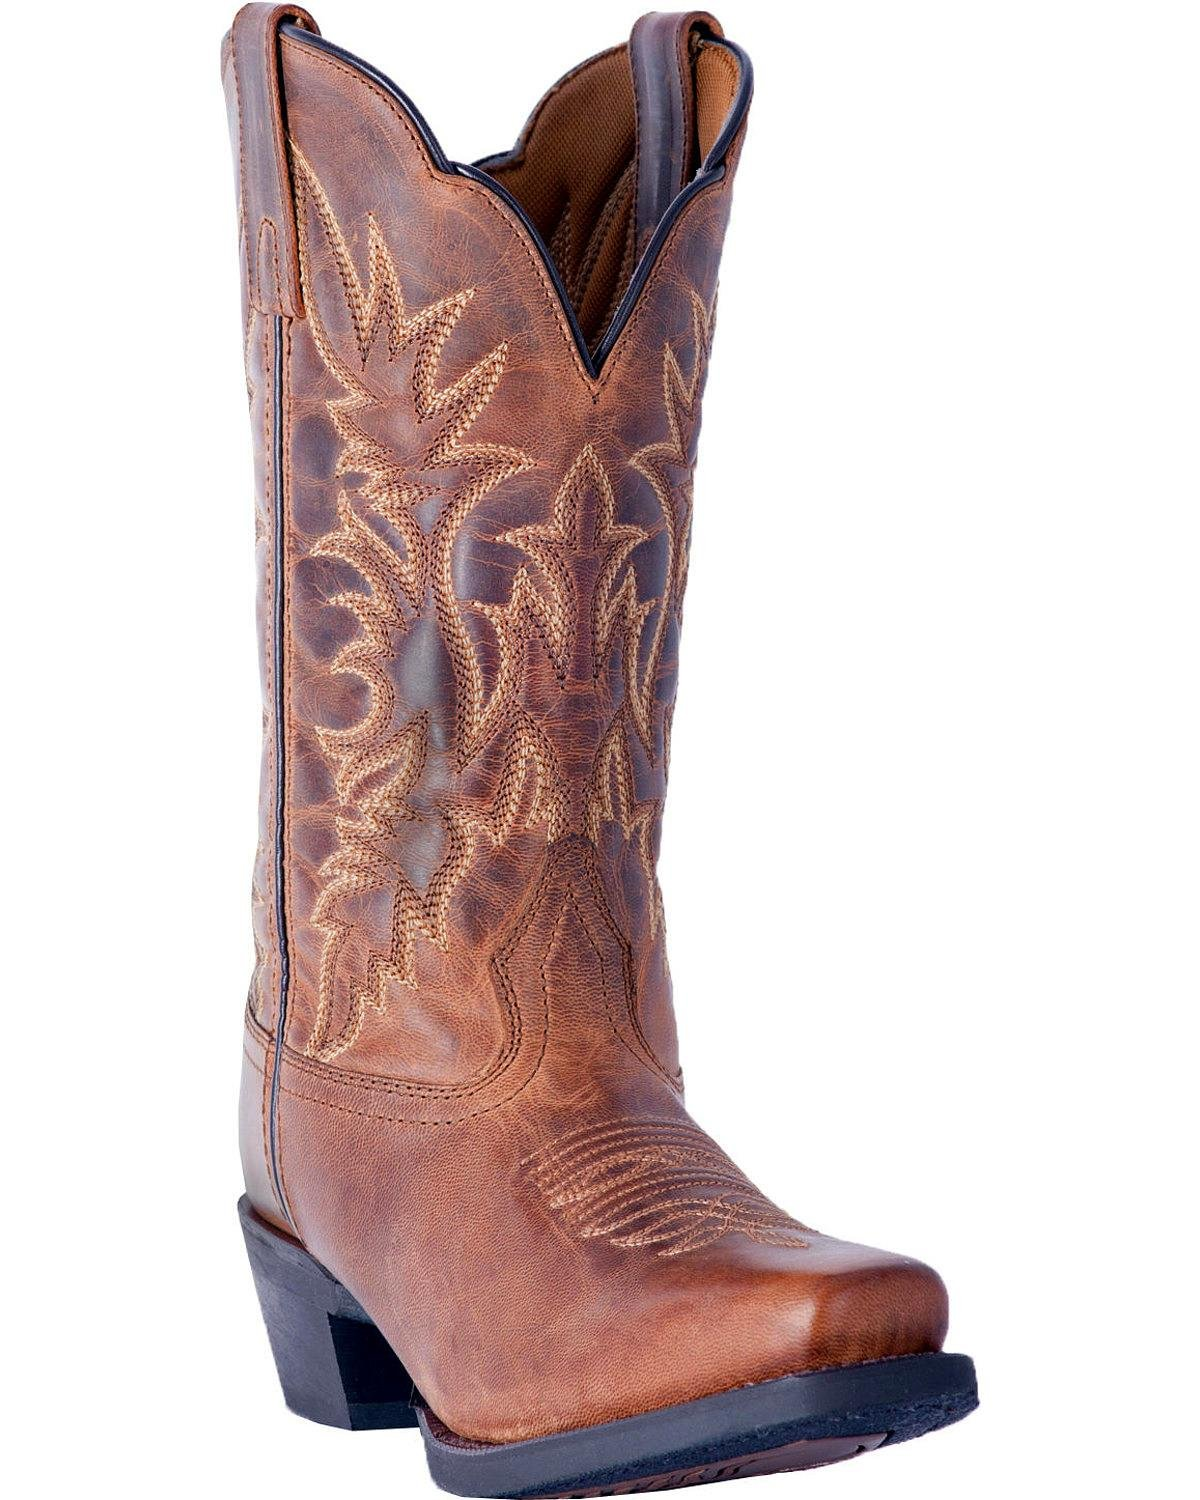 Laredo Women's Malinda Cowgirl Boot Square Toe - 51134 B0785MGK5Y 8.5 B(M) US|Tan